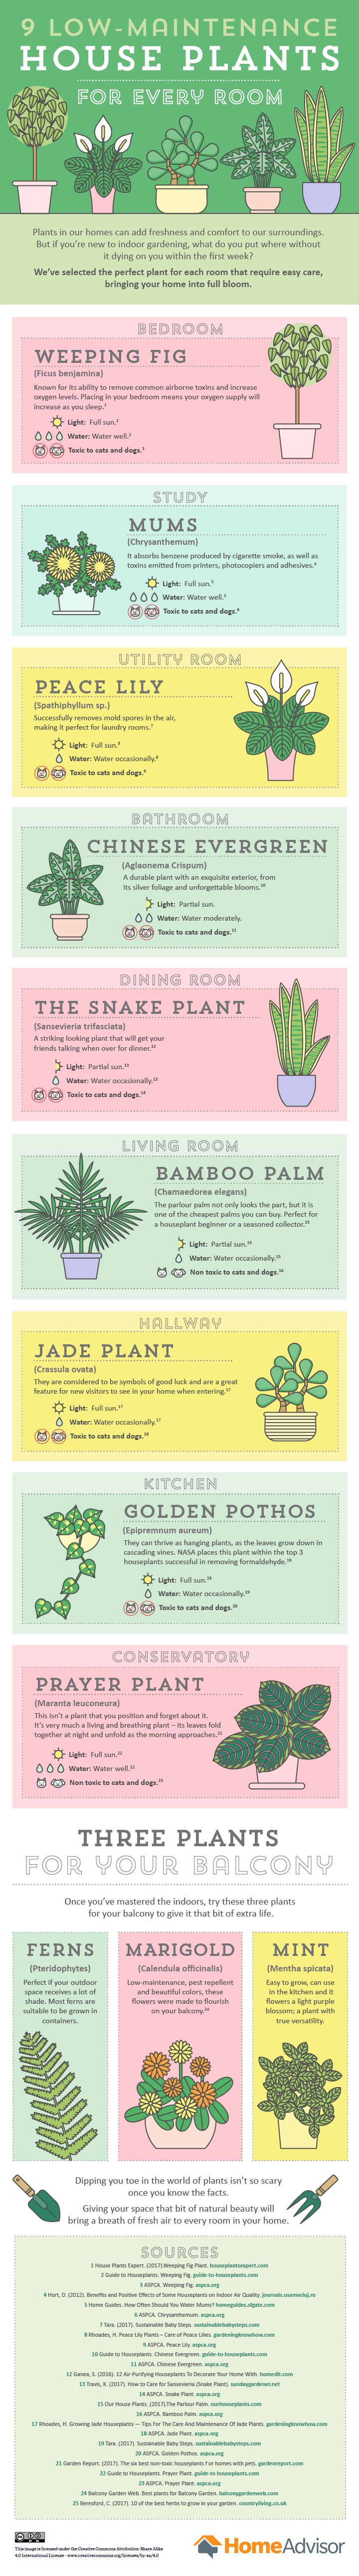 Houseplants are amazing but if you put a plant in the wrong place, it could die. Use this guide to find out which plants should go where in your home.